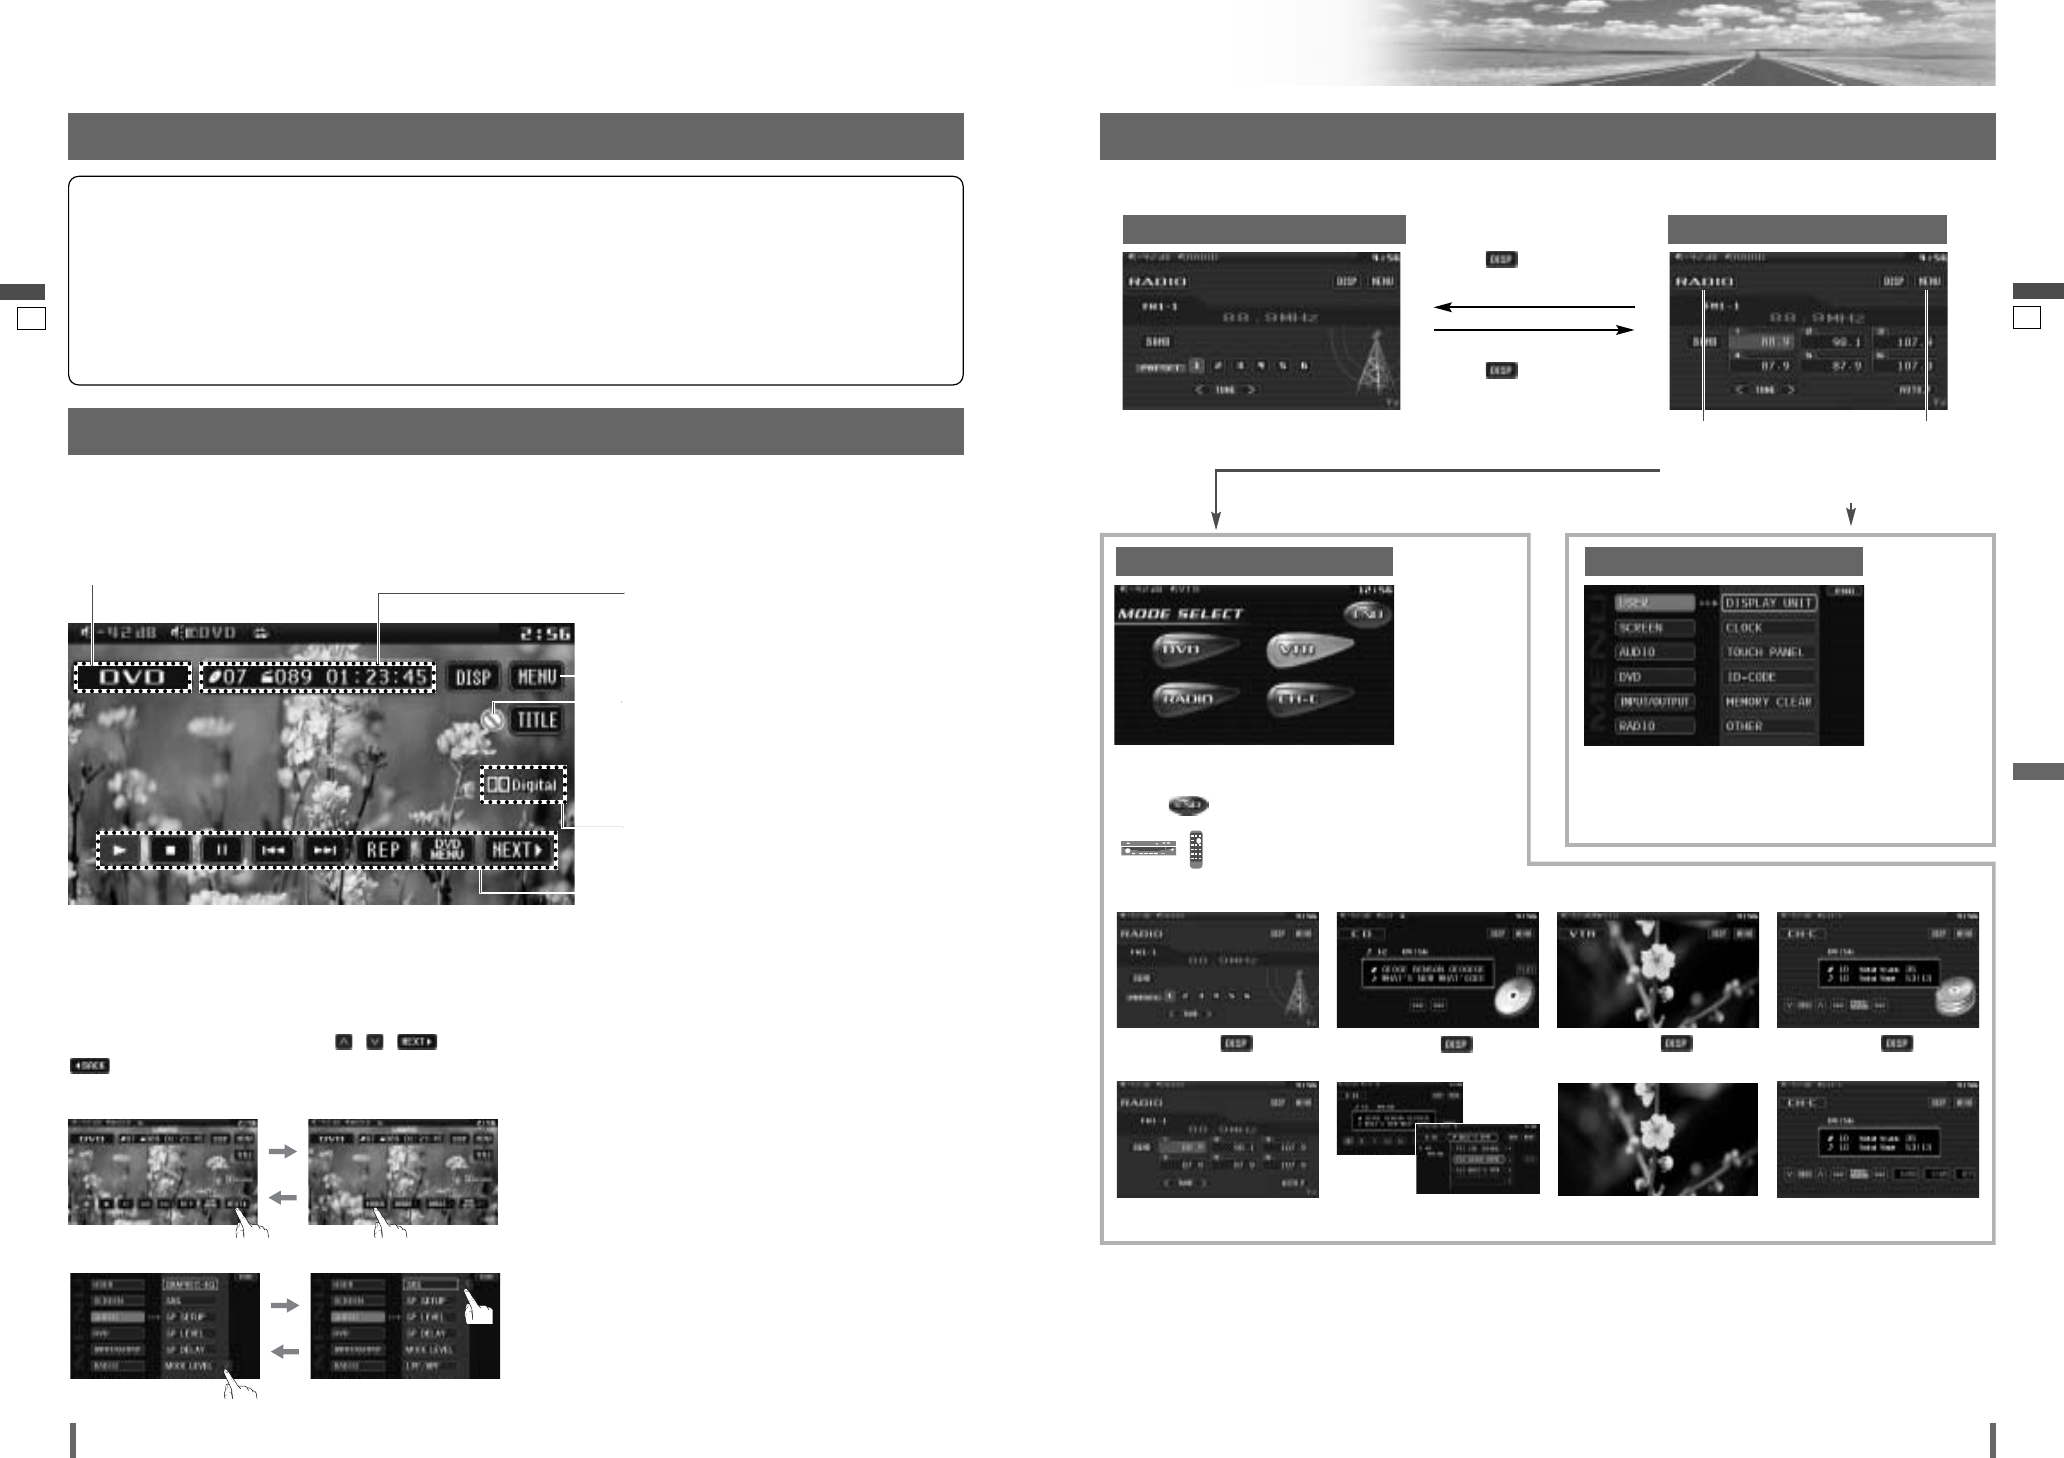 Page 70 Of Panasonic Car Stereo System Cq Vd7001u User Guide